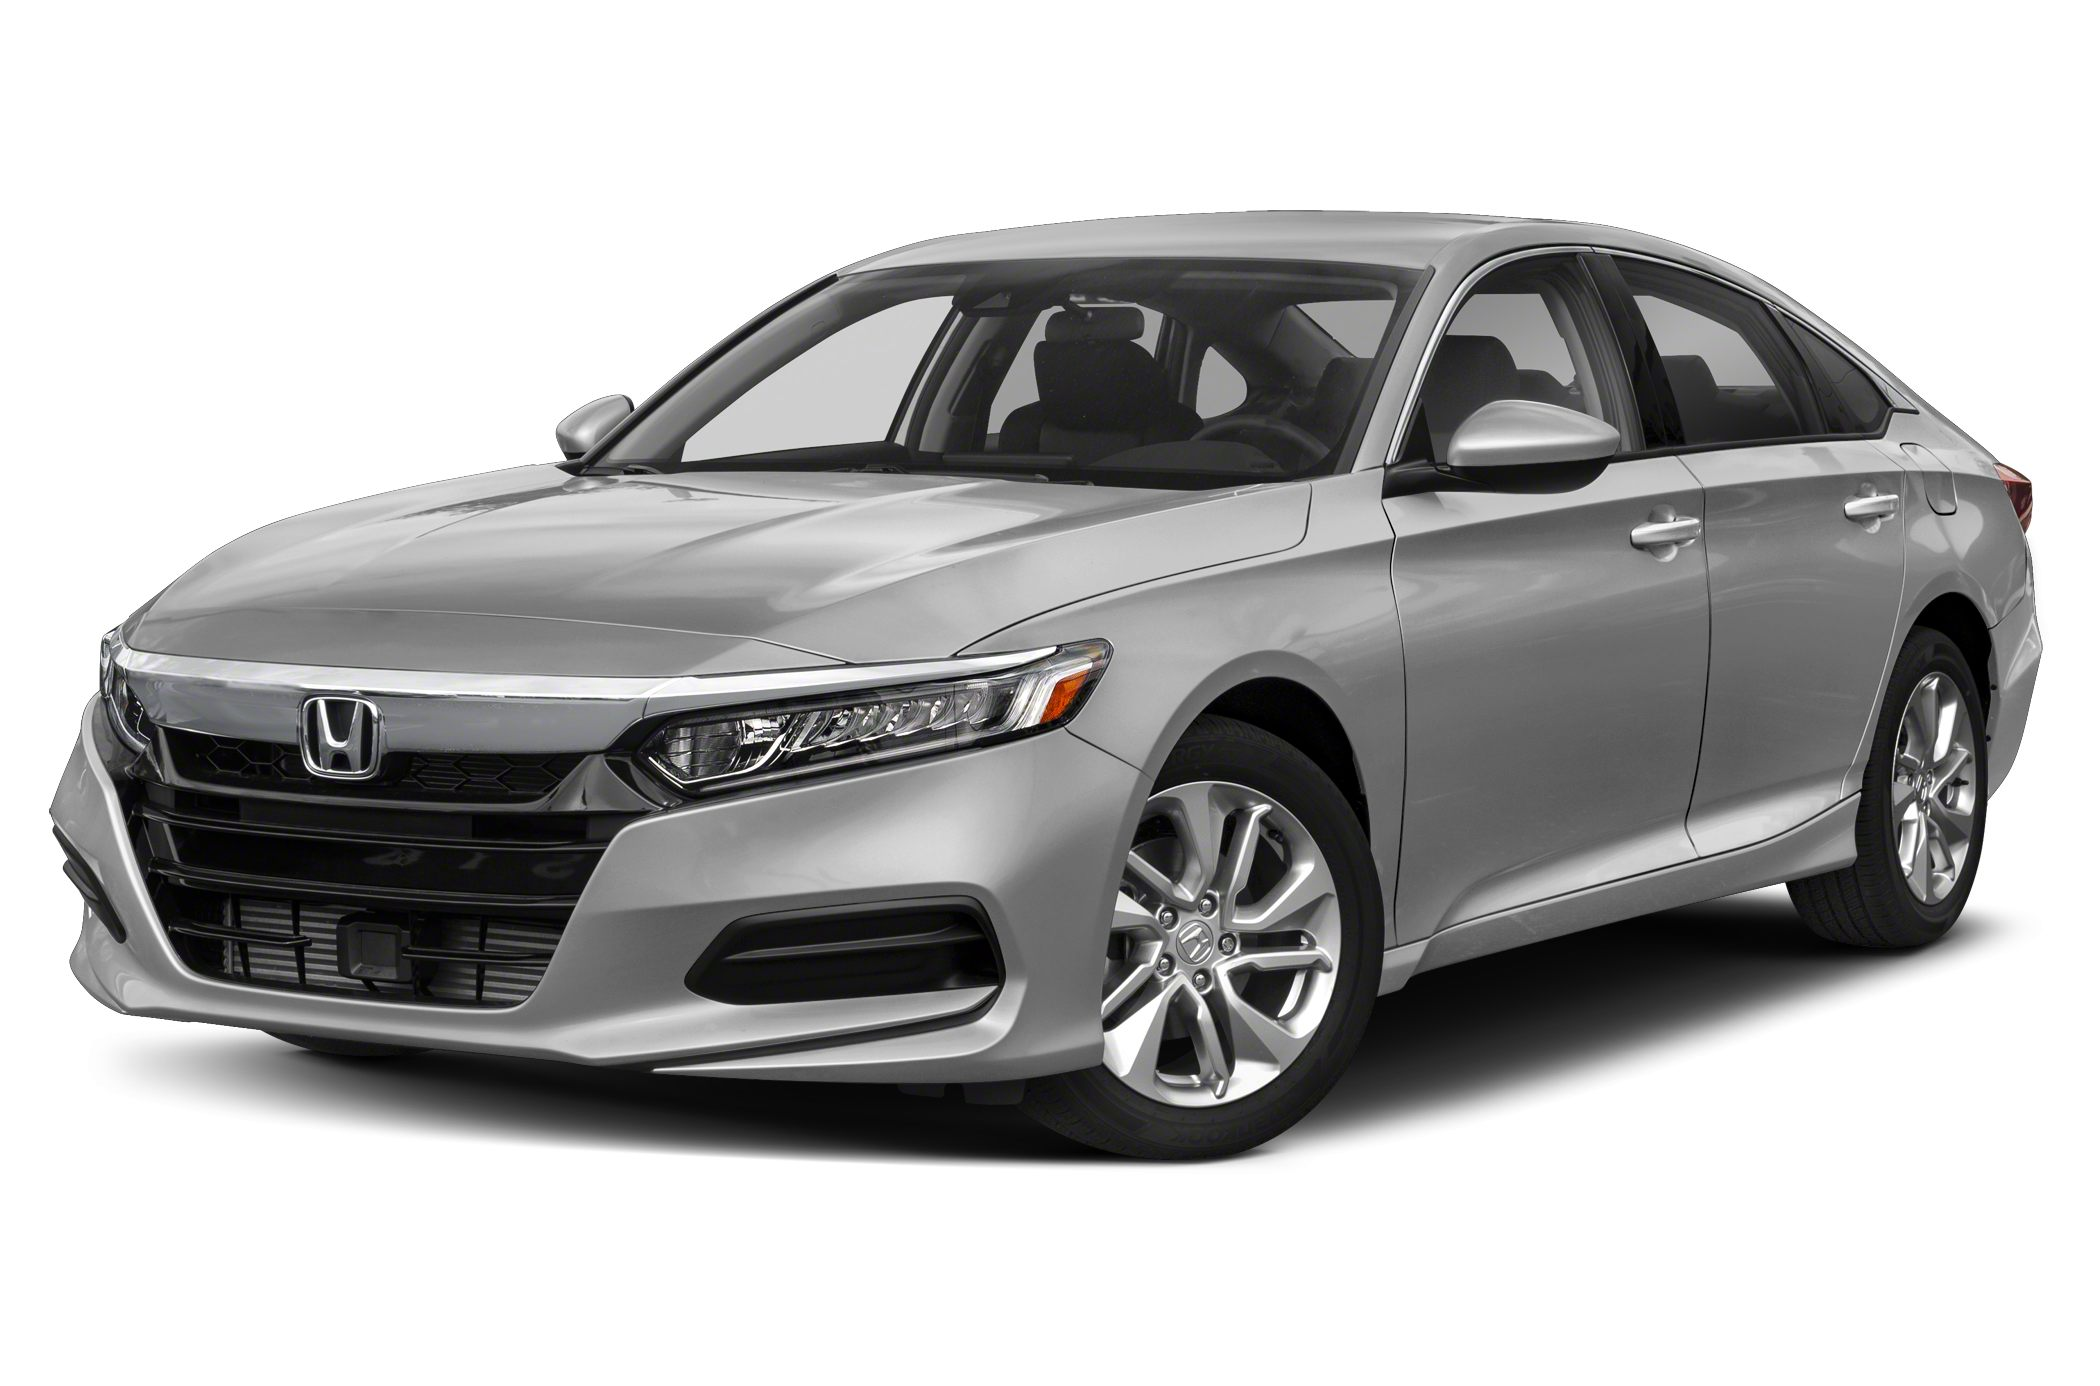 Honda Accord Online Price >> 2019 Honda Accord Deals Prices Incentives Leases Overview